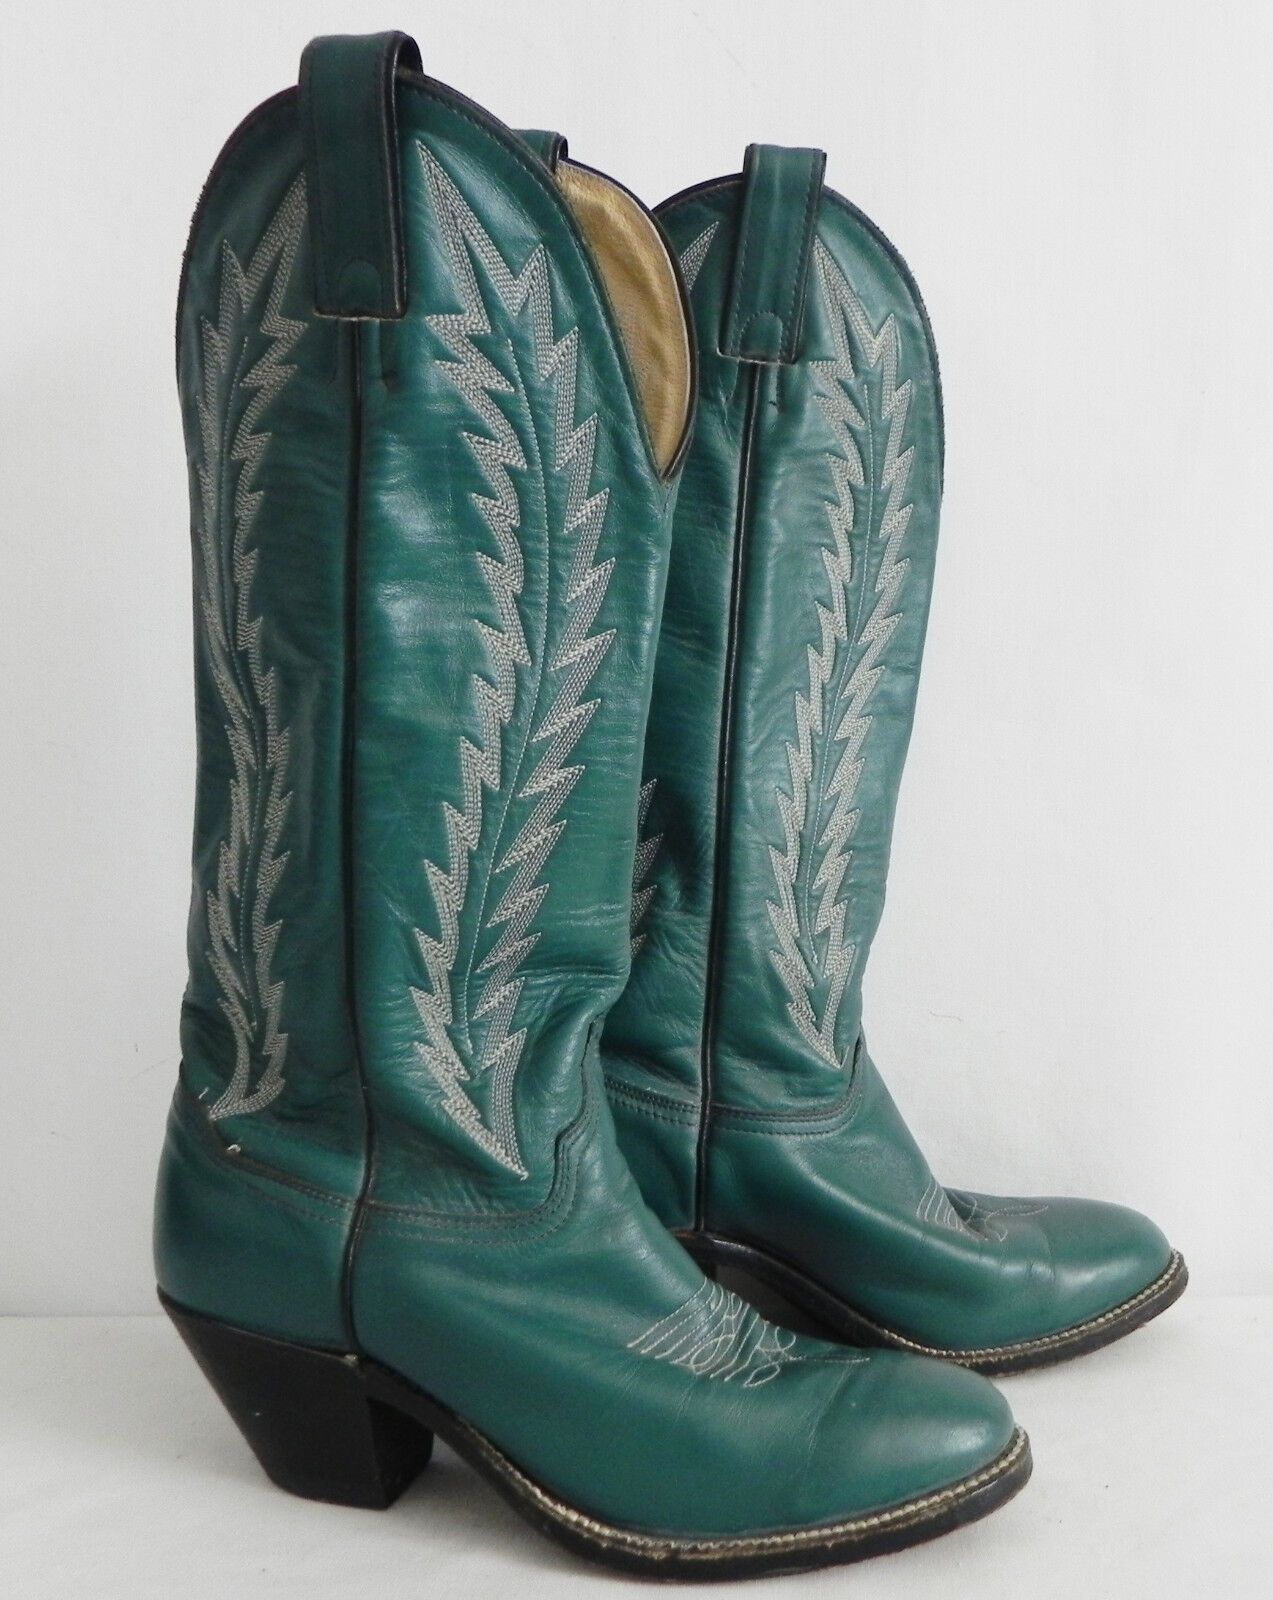 Abilene Boots Western Green Leather 2  Heel Size 6.5M